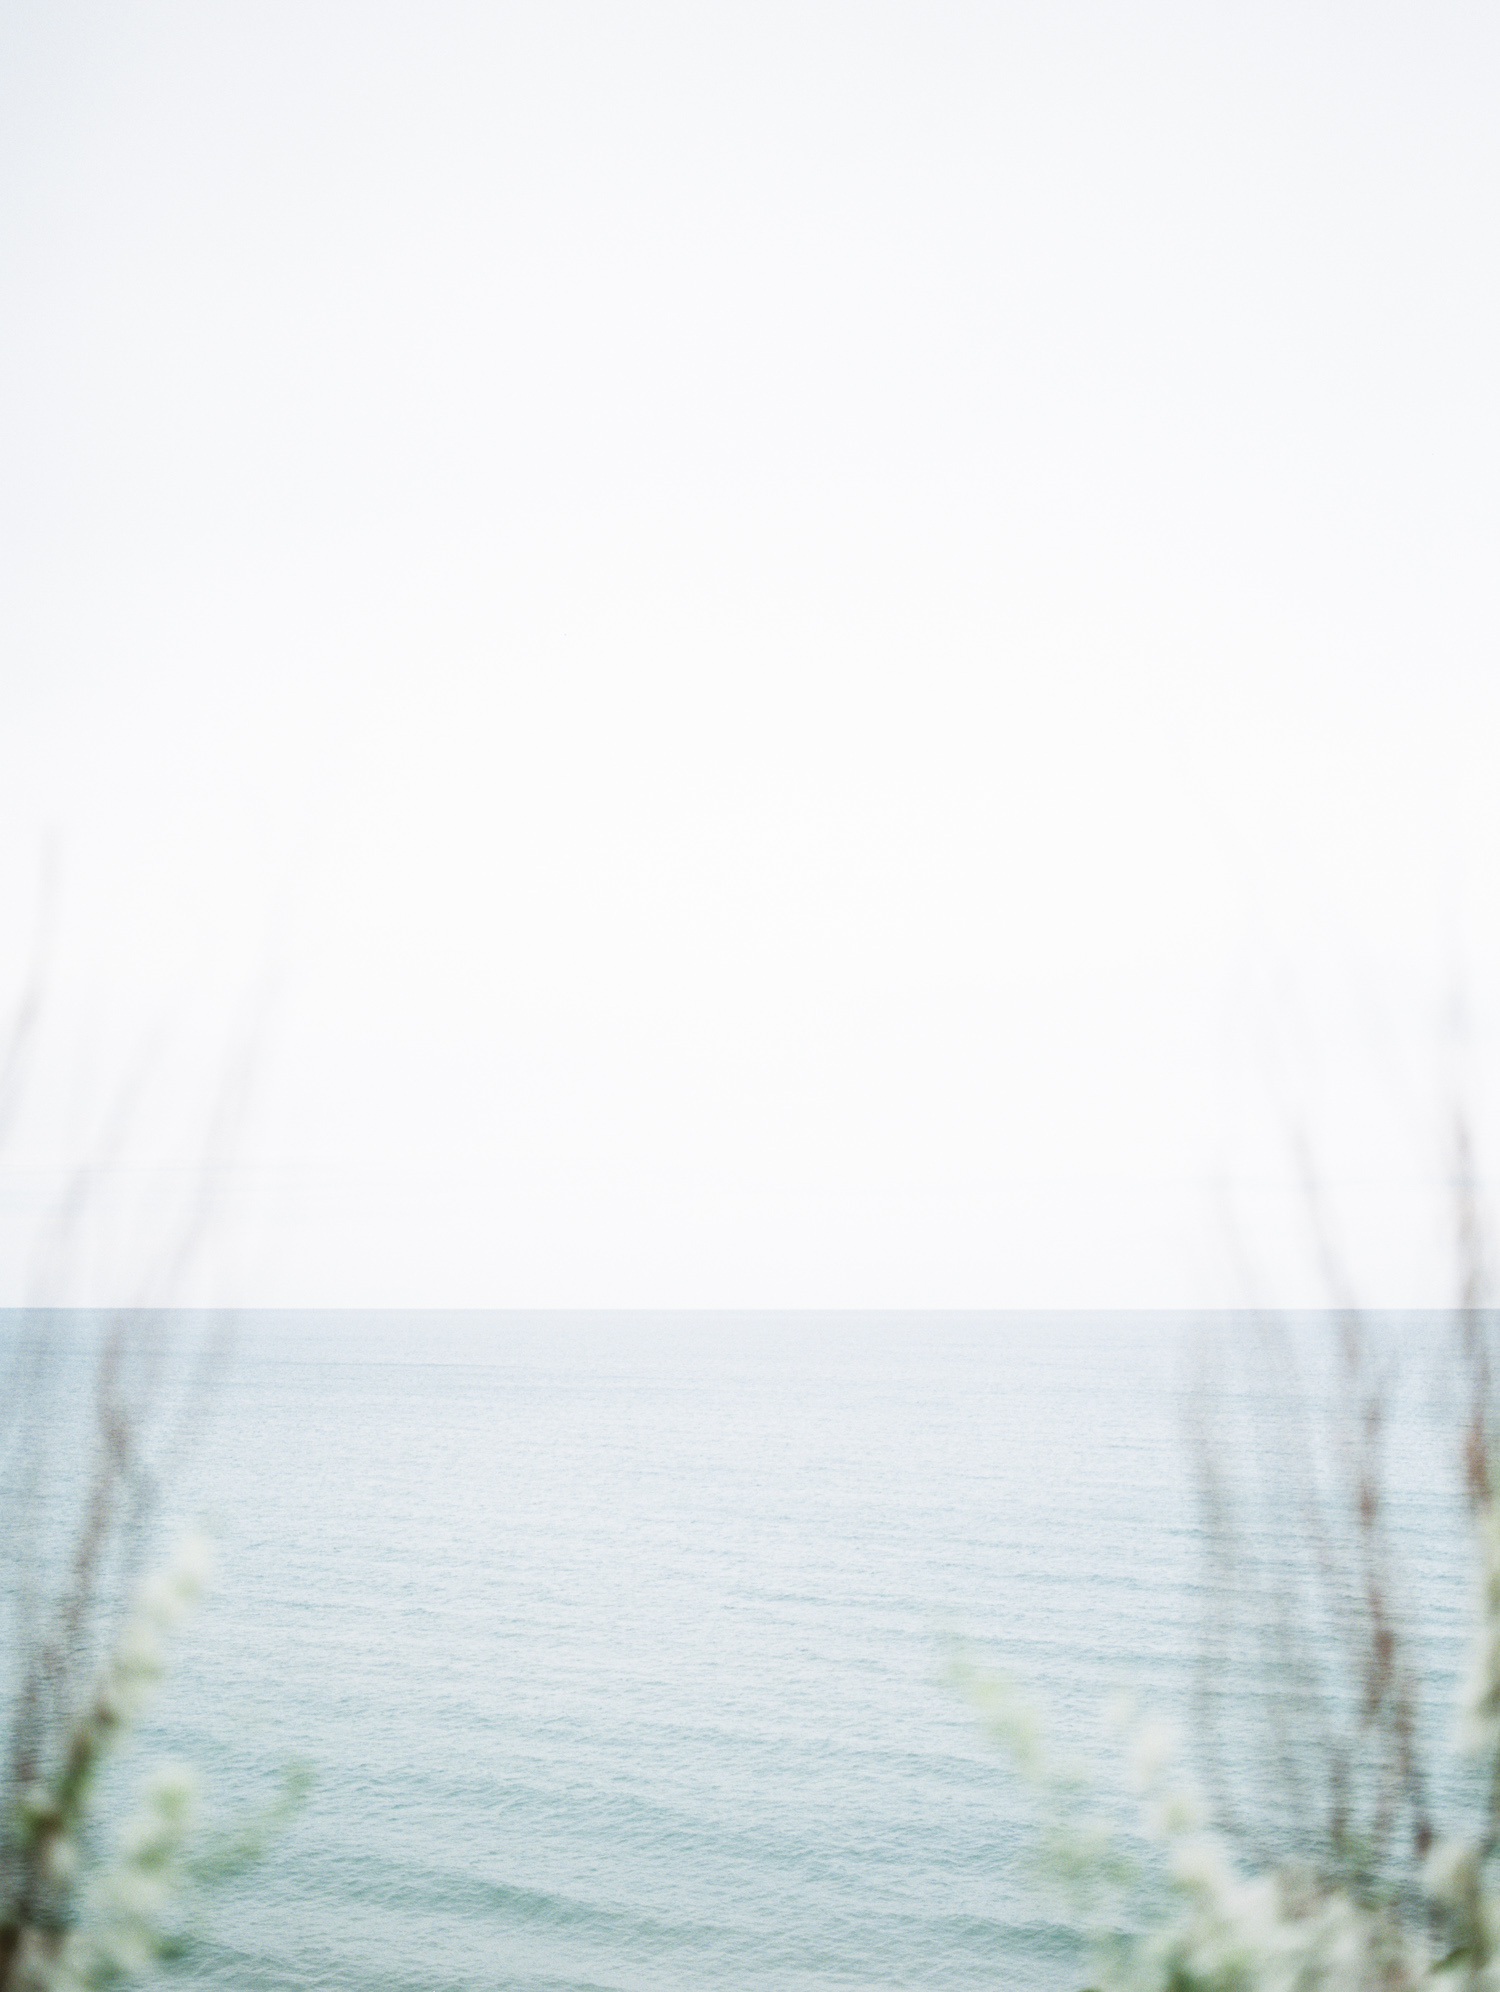 the vast expanse of Lake Michigan with foreground branches in soft focus